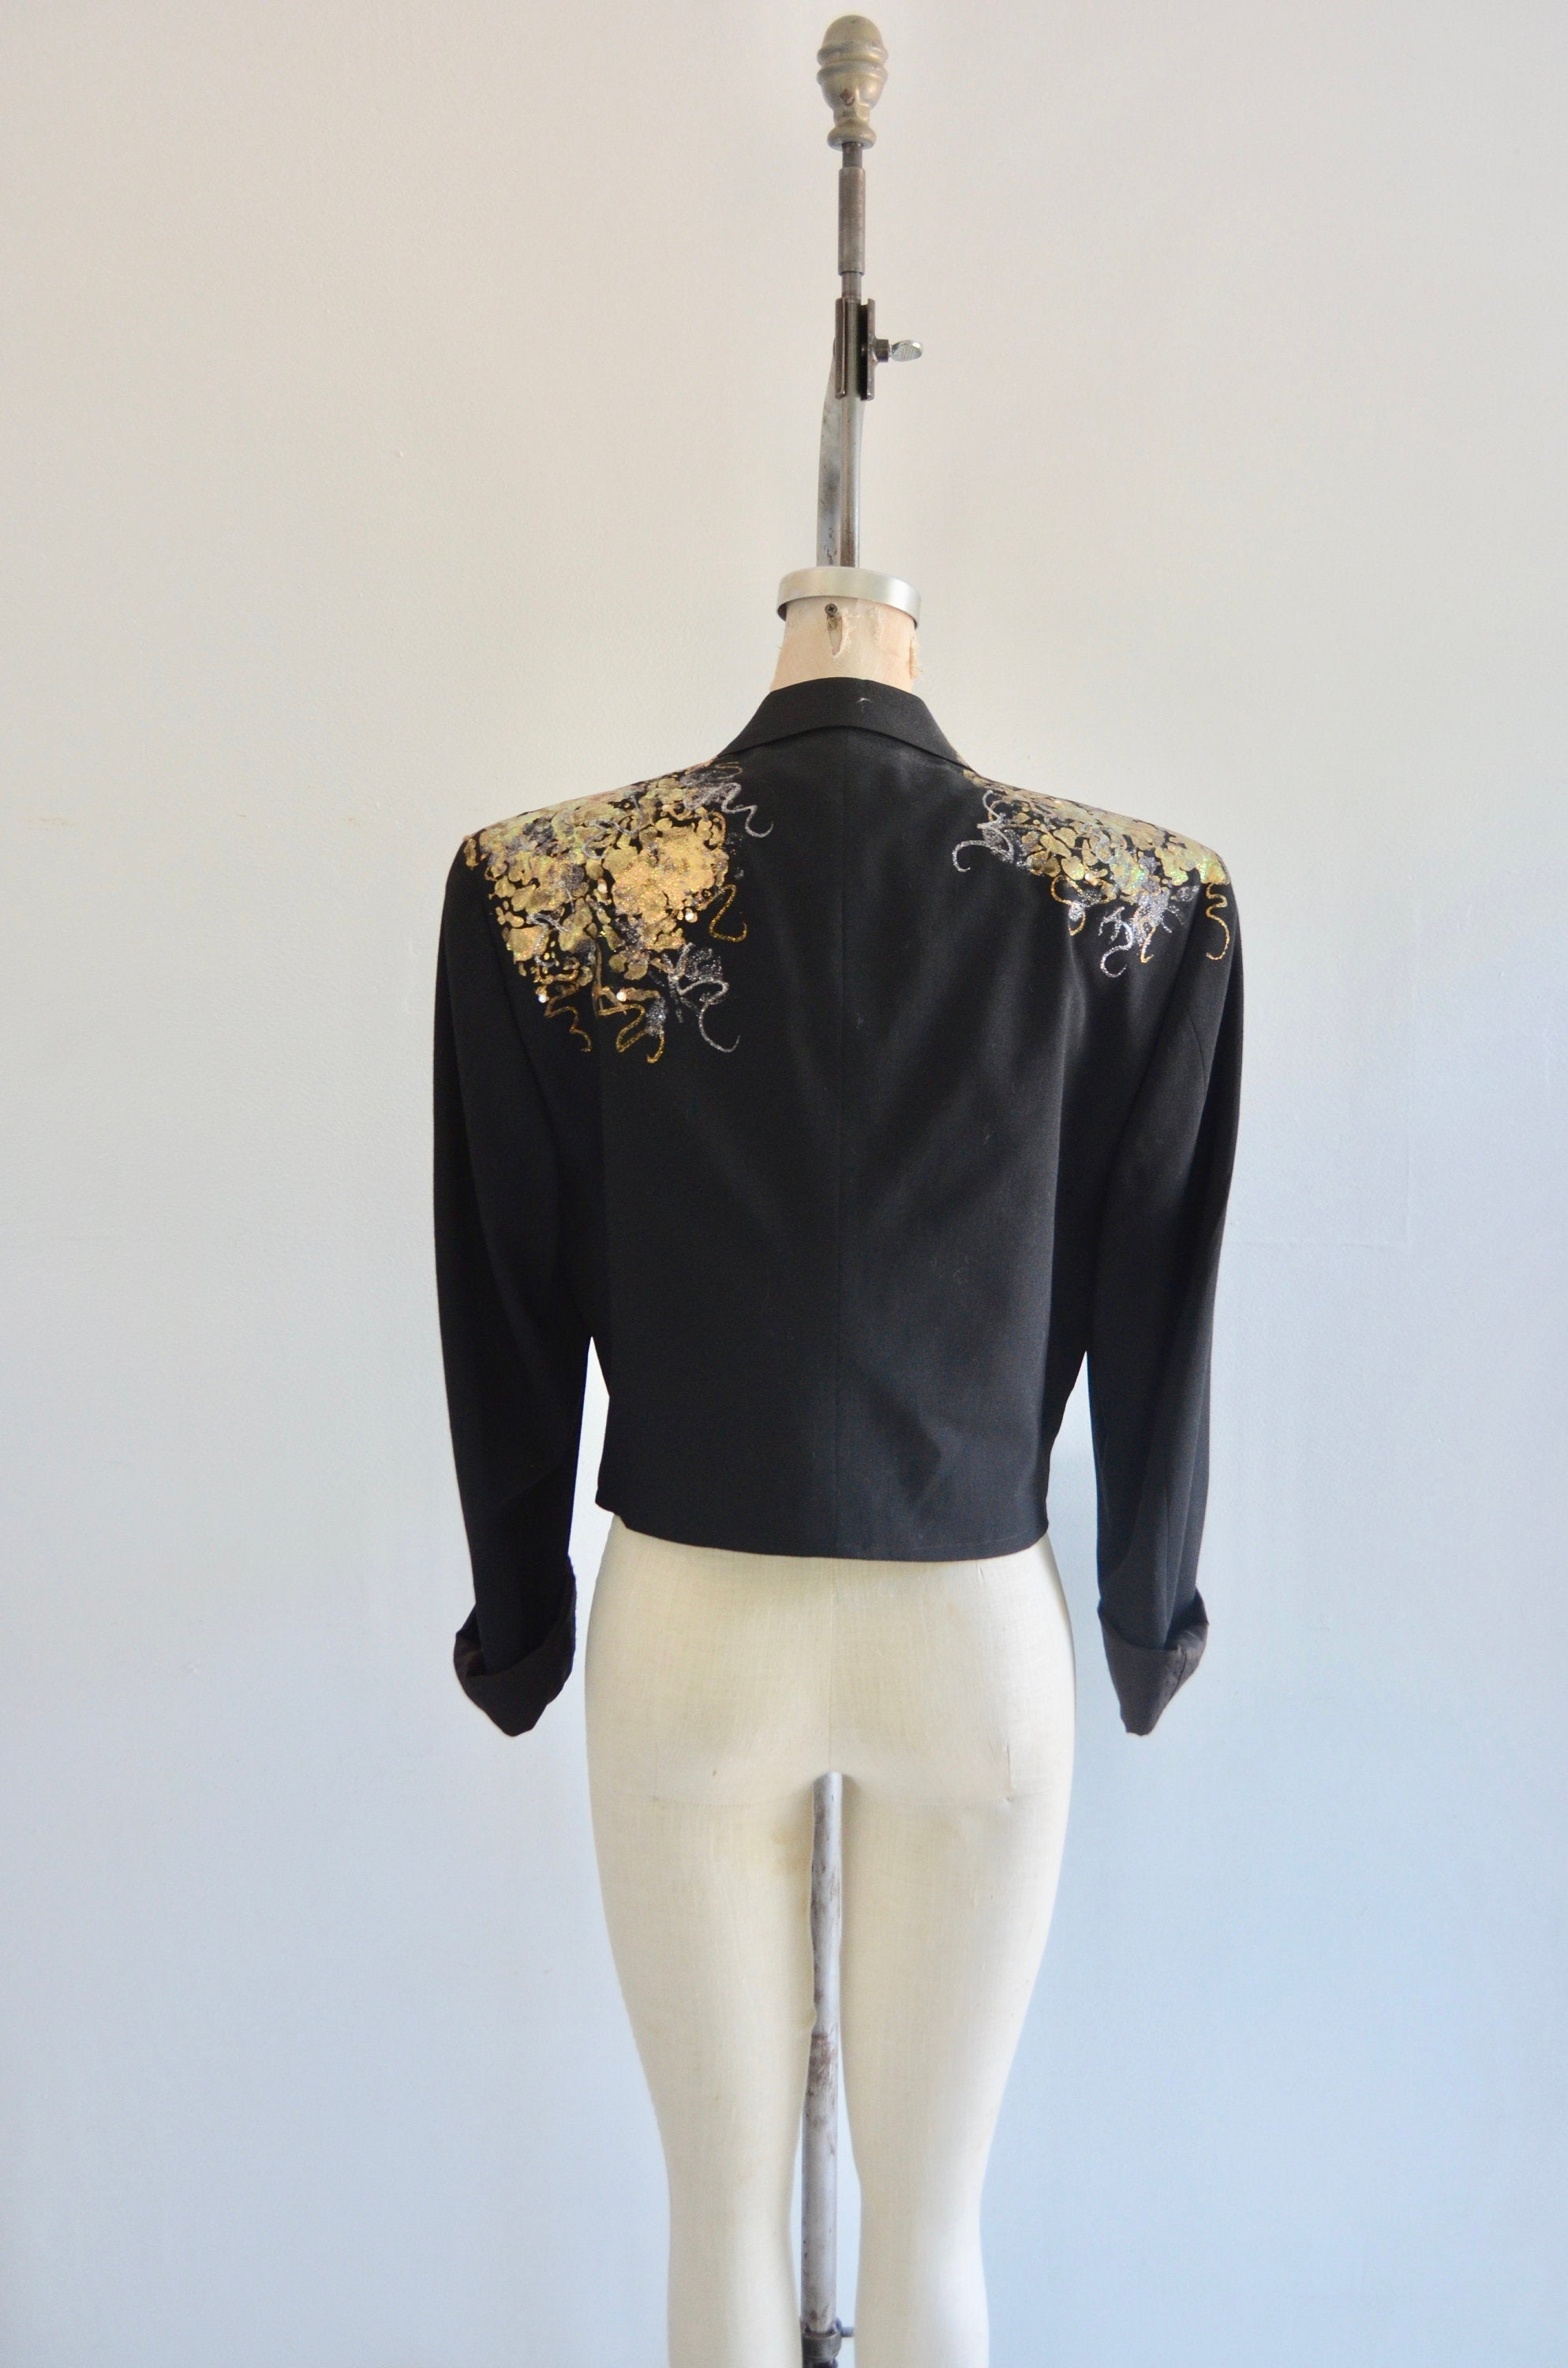 Black Cropped Tuxedo Jacket Tailored With Gold Print Design After Six Collared Formal Elegant Spring